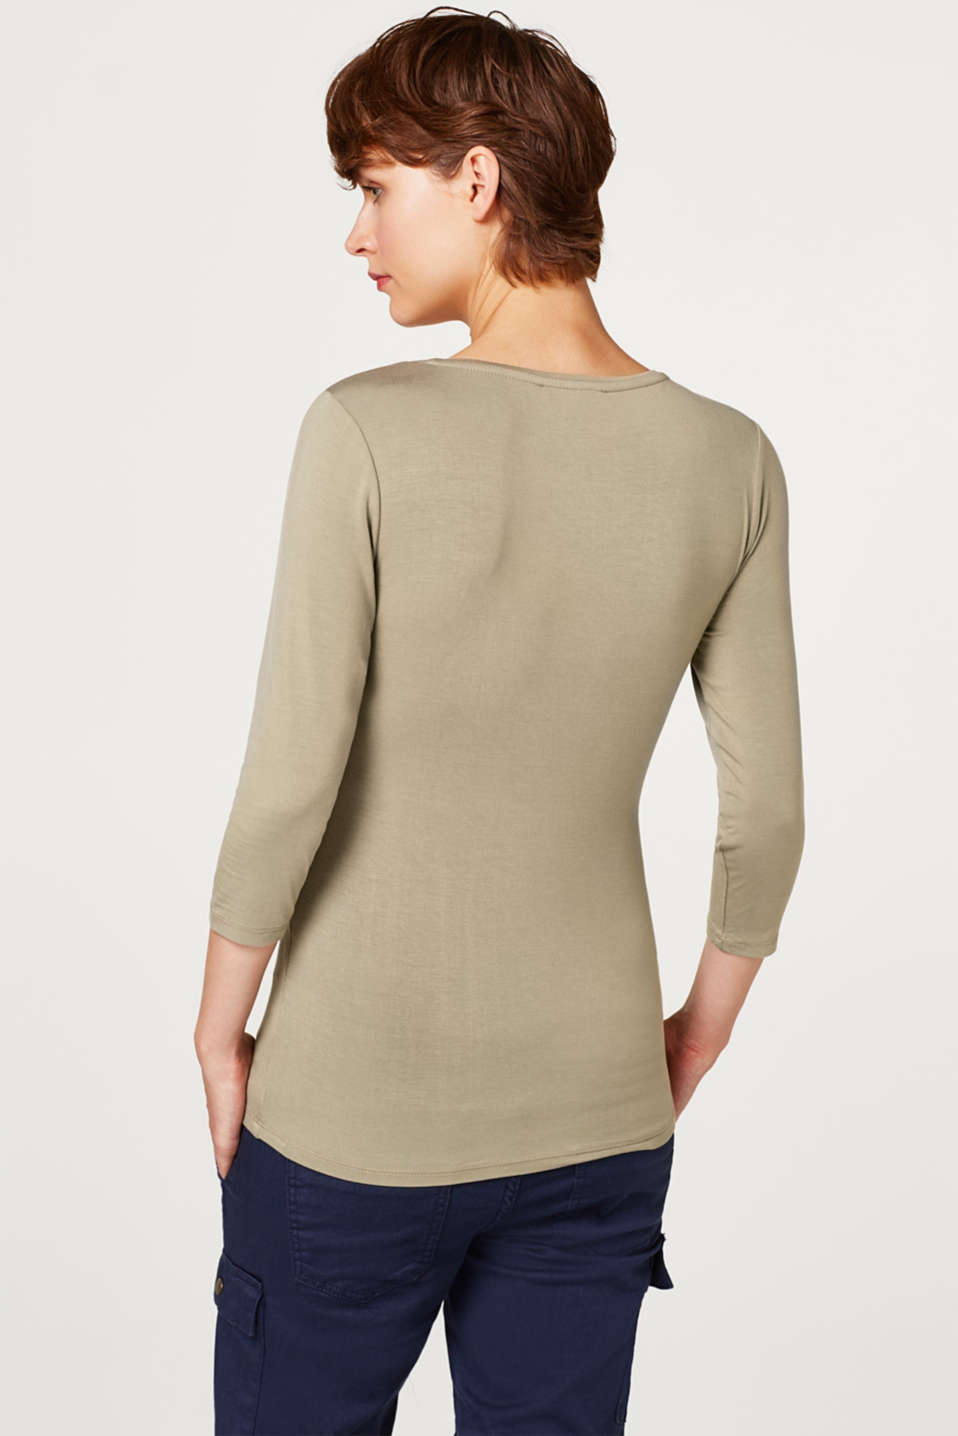 Nursing top with bow details, LCREAL OLIVE, detail image number 3